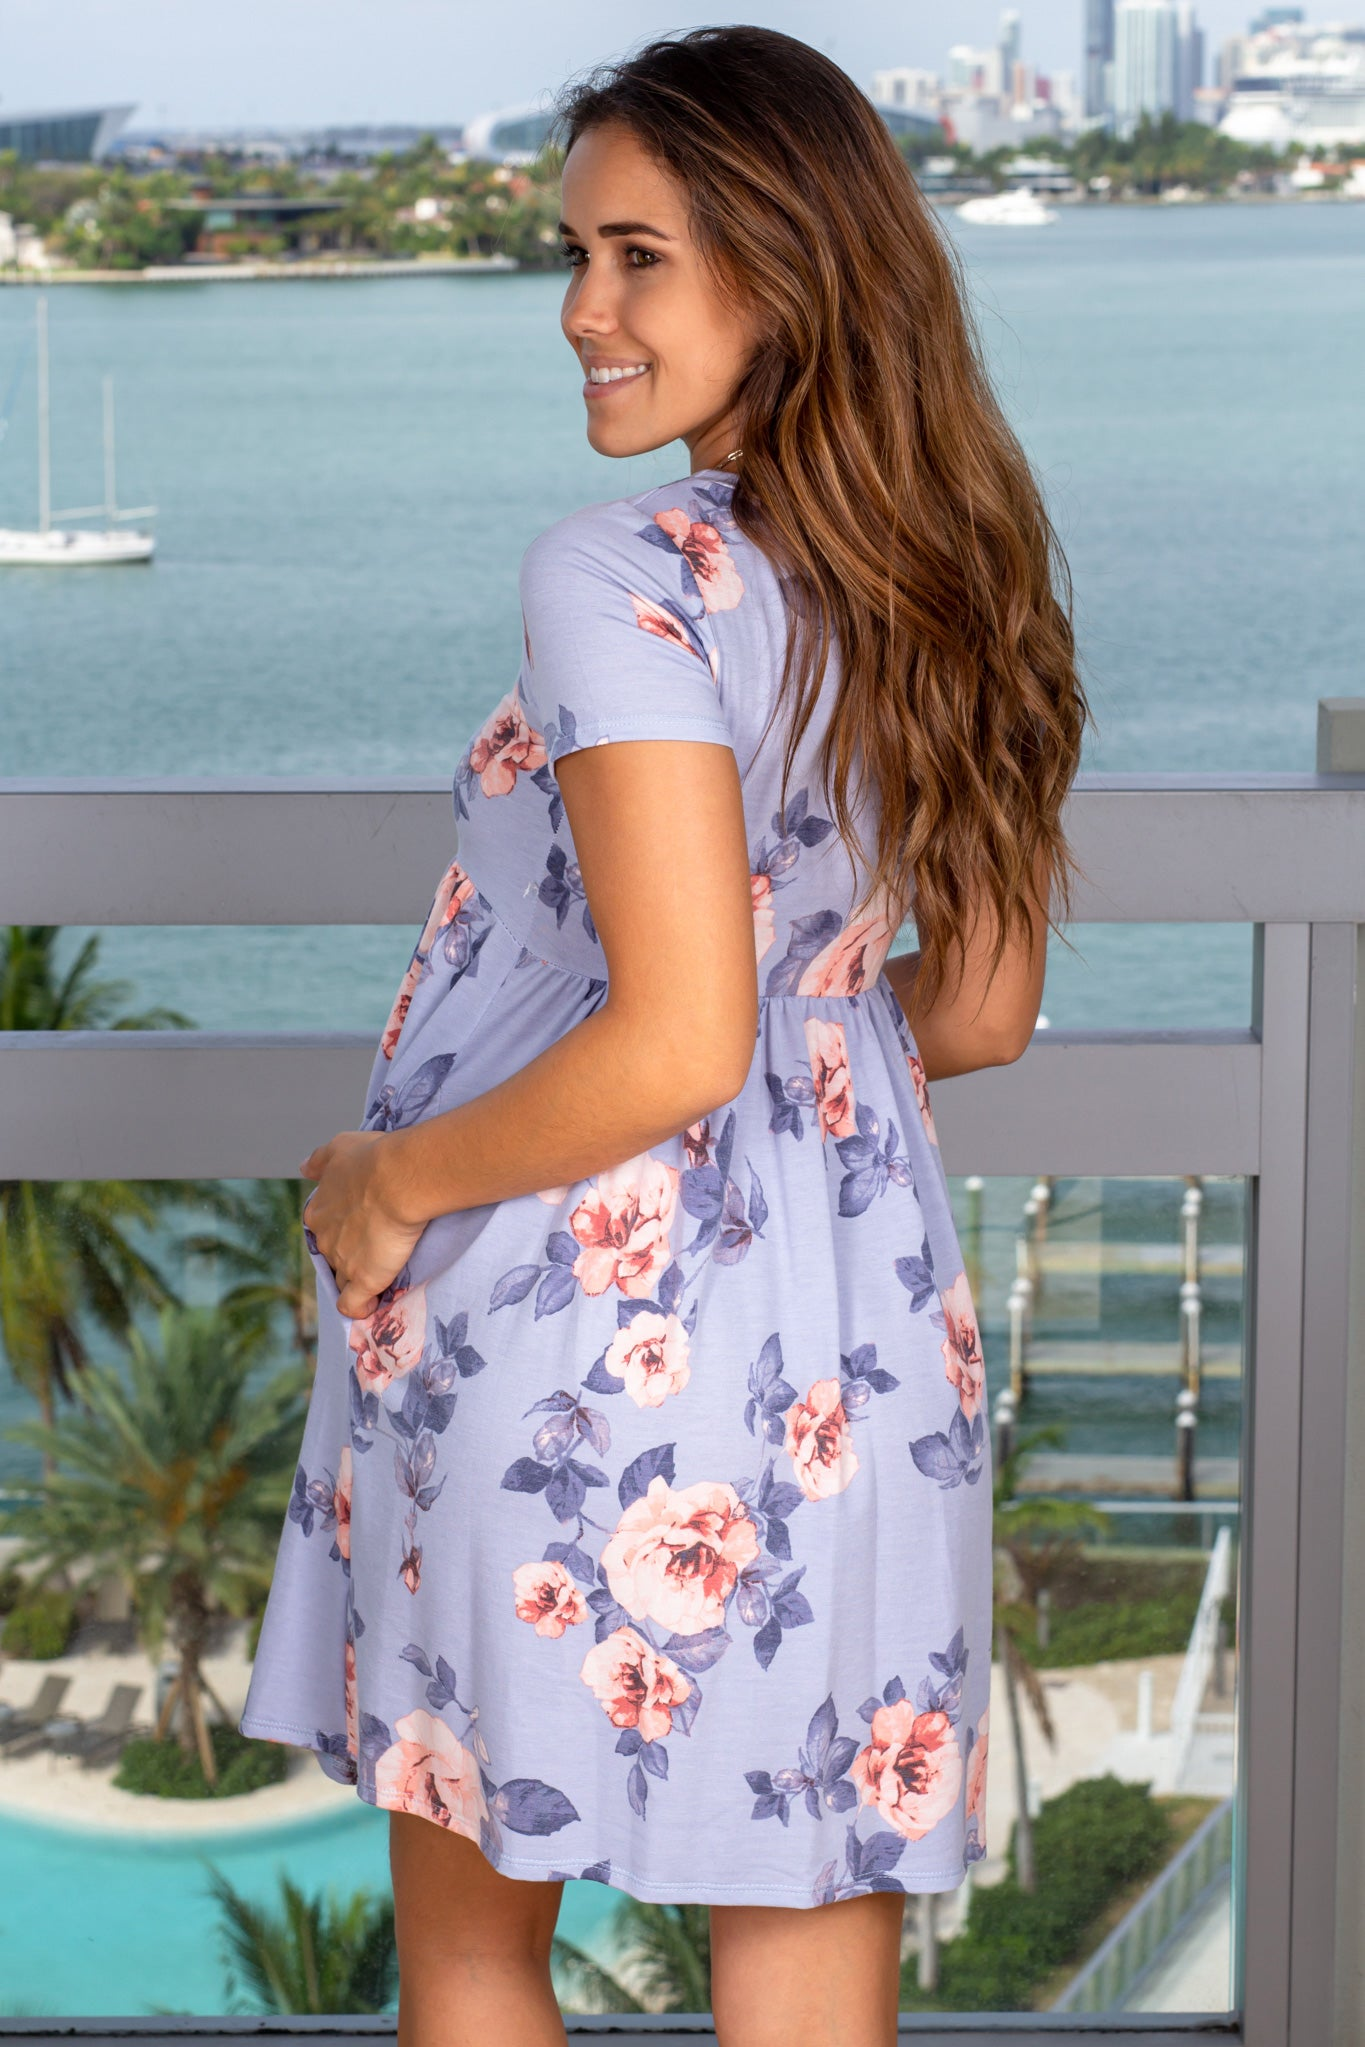 Floral Maternity Dresses